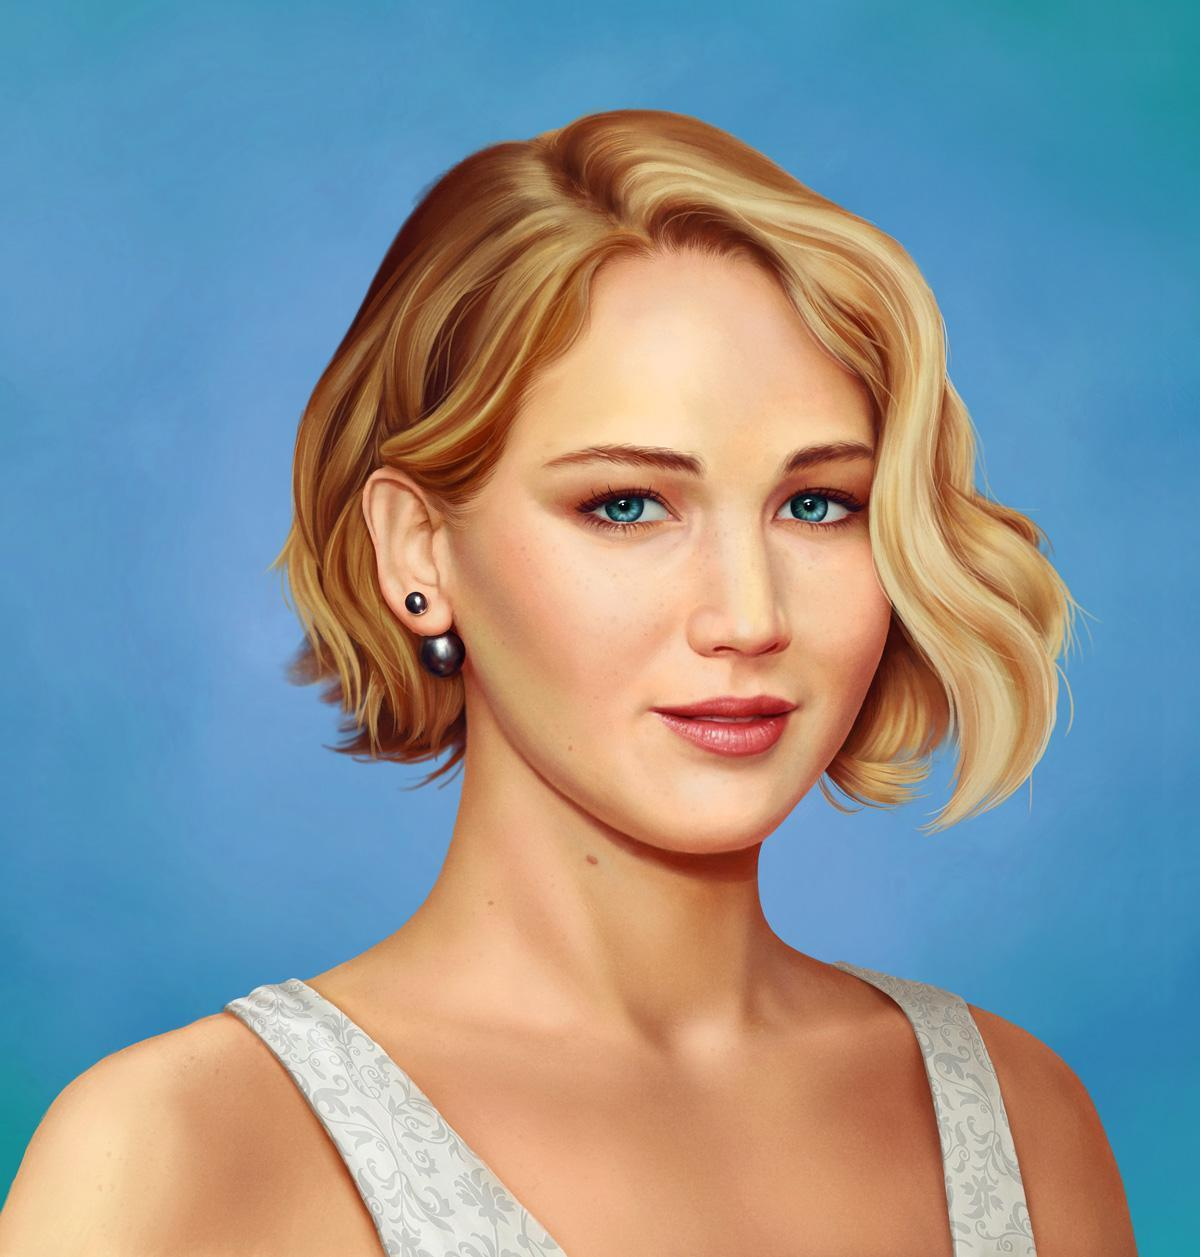 Jennifer_Lawrence_Final(ss).thumb.jpg.13